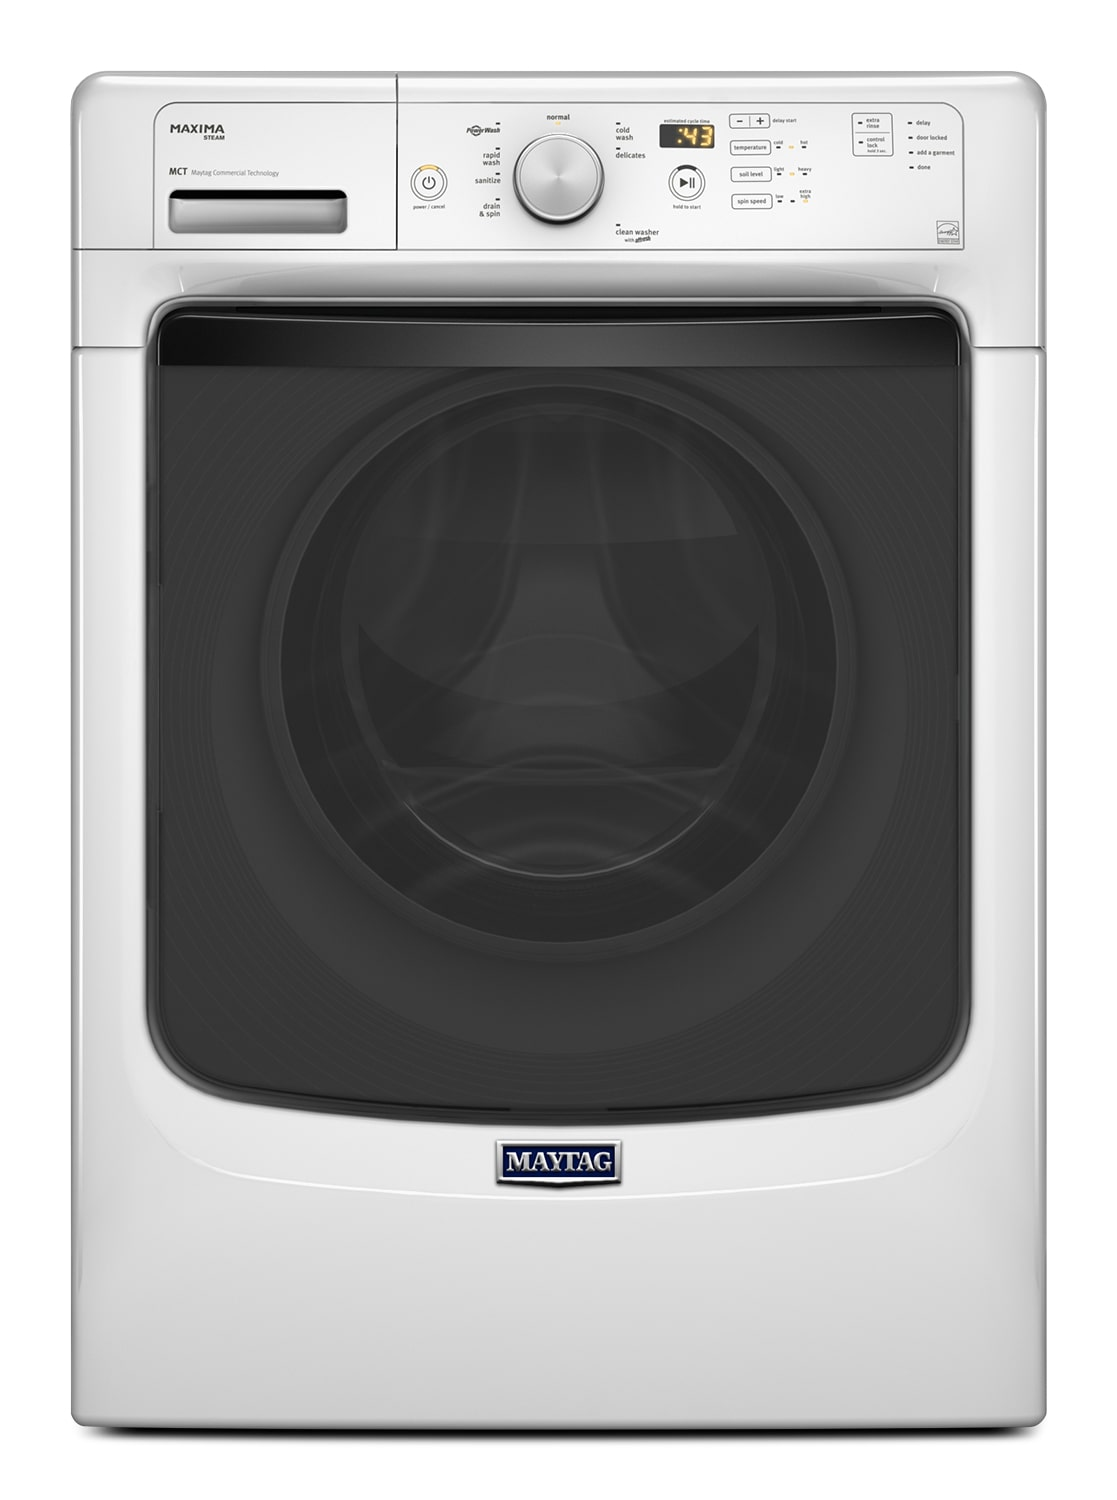 Washers and Dryers - Maytag Maxima® White Front Load Washer w/ Fresh Hold® Option (4.8 Cu. Ft. IEC) - MHW5400DW